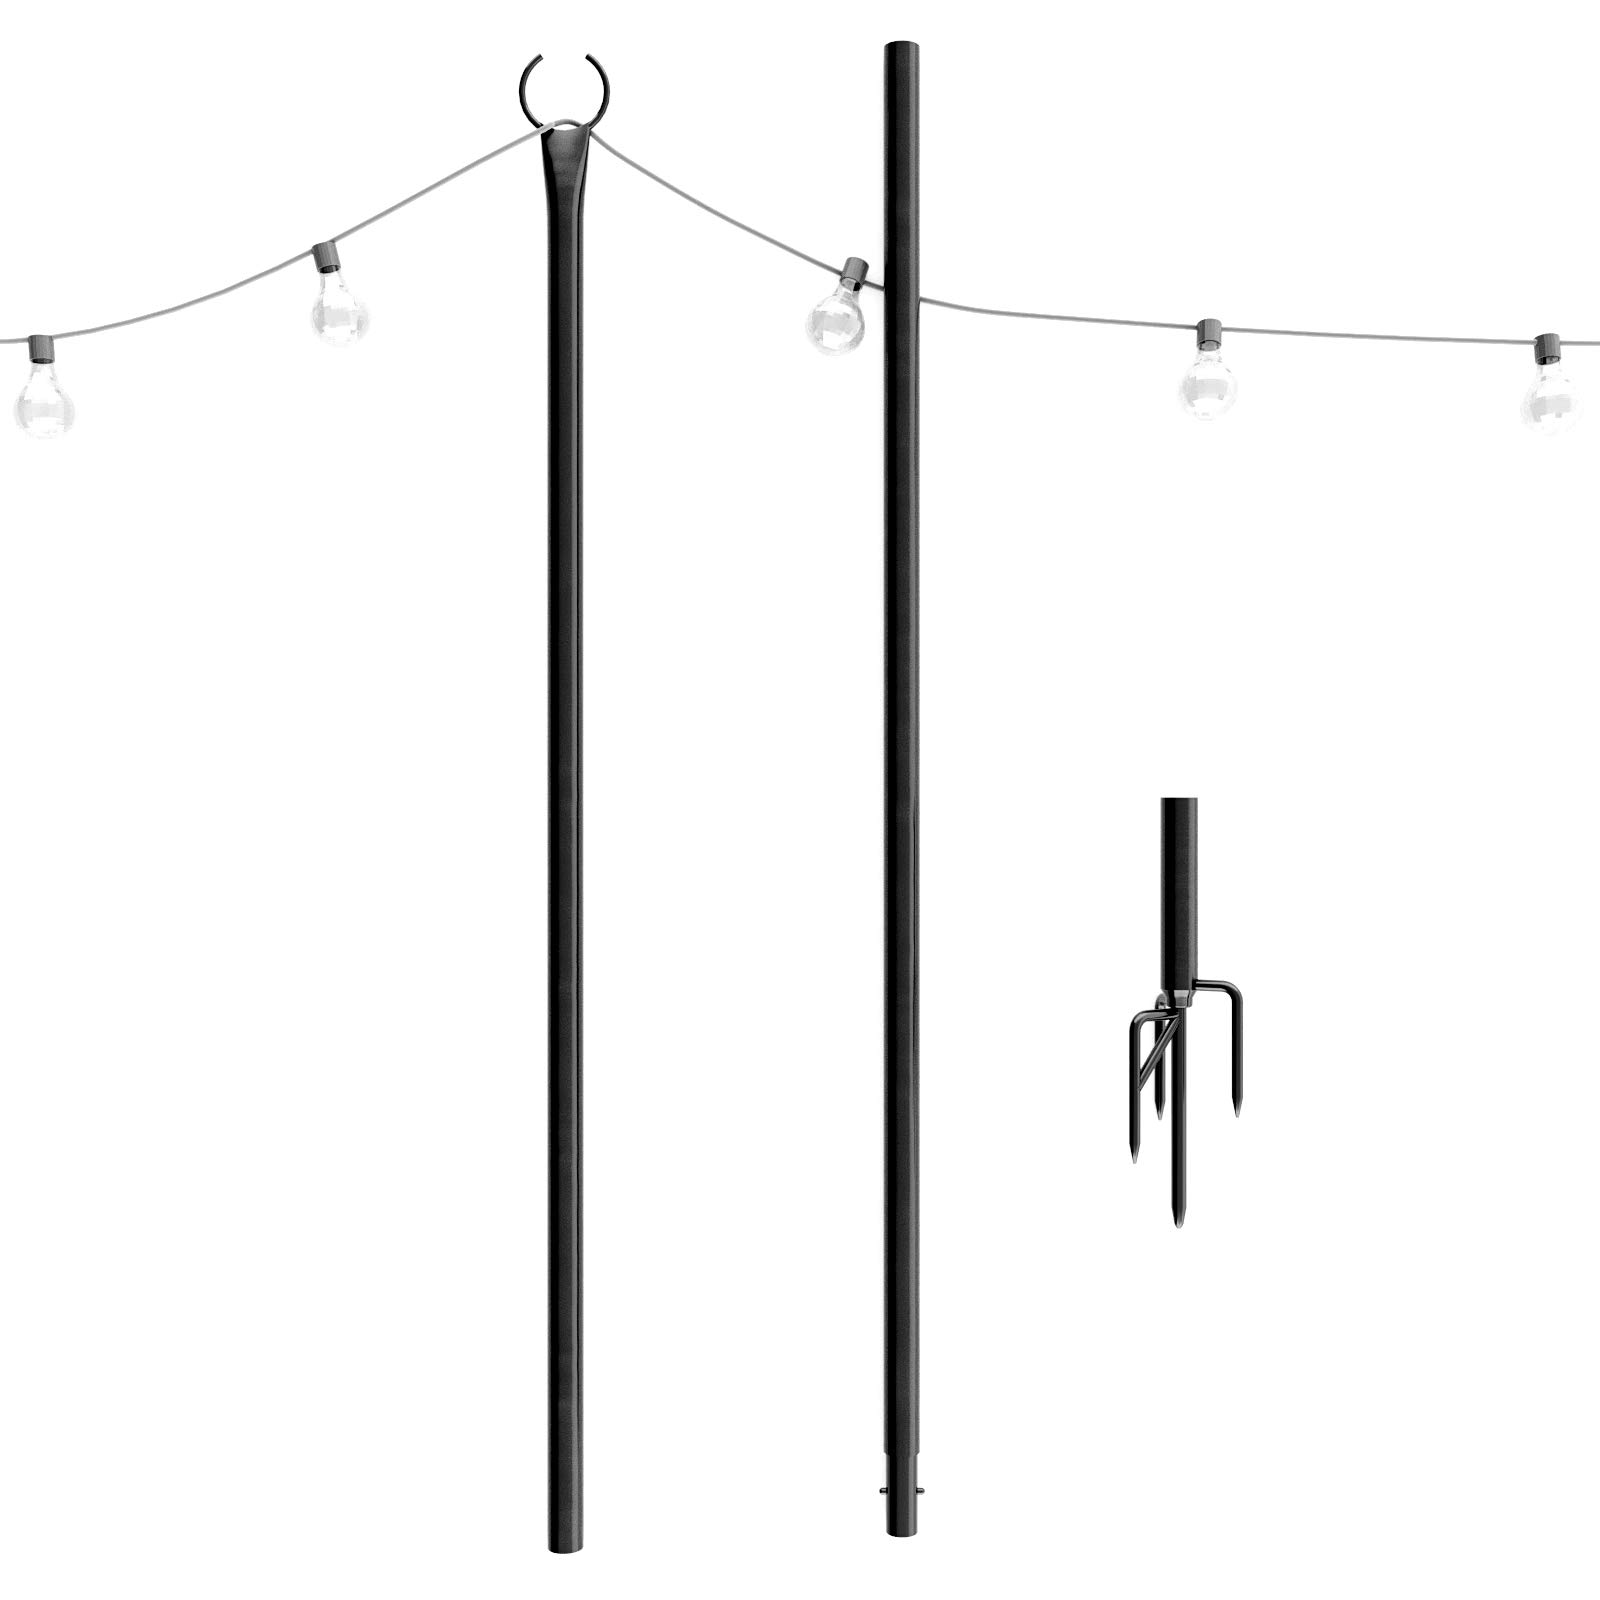 Outdoor String Lights Pole (1 x 8f) - New 4-Prong Sturdy Fork to Dig Deep - Light Up Patio or Garden with LED Or Solar Hanging Bulbs - Water-Resistant Steel Powder Coated Poles for House Café Wedding